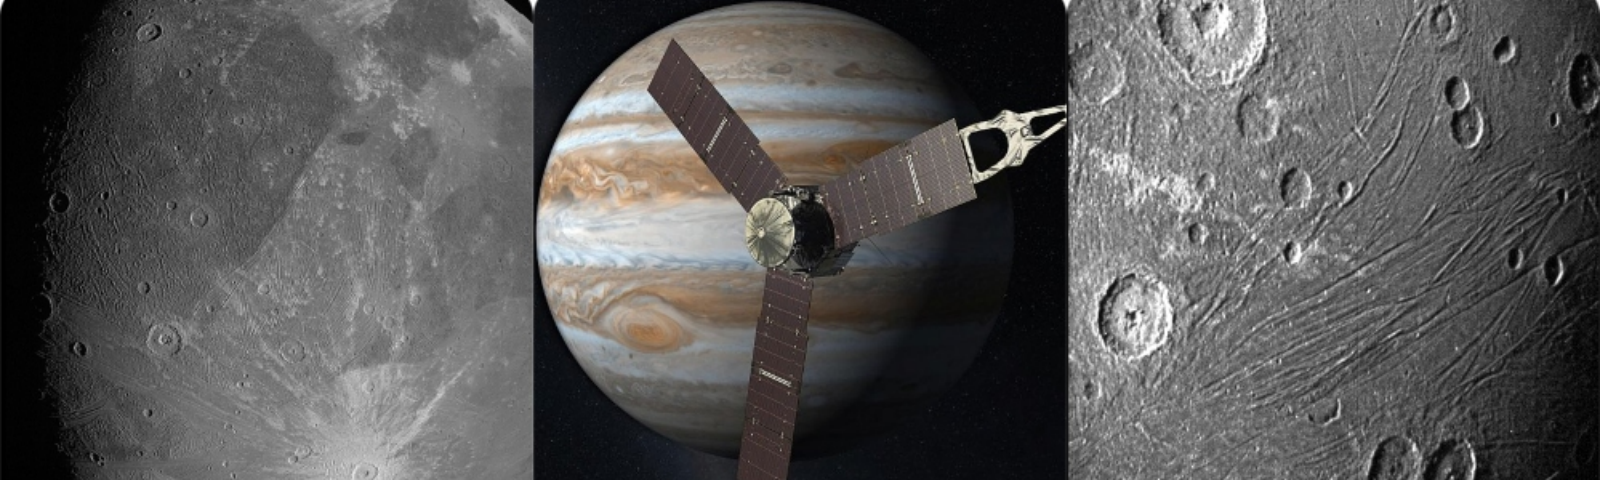 Two images of Ganymede from Juno, as well as the spacecraft.